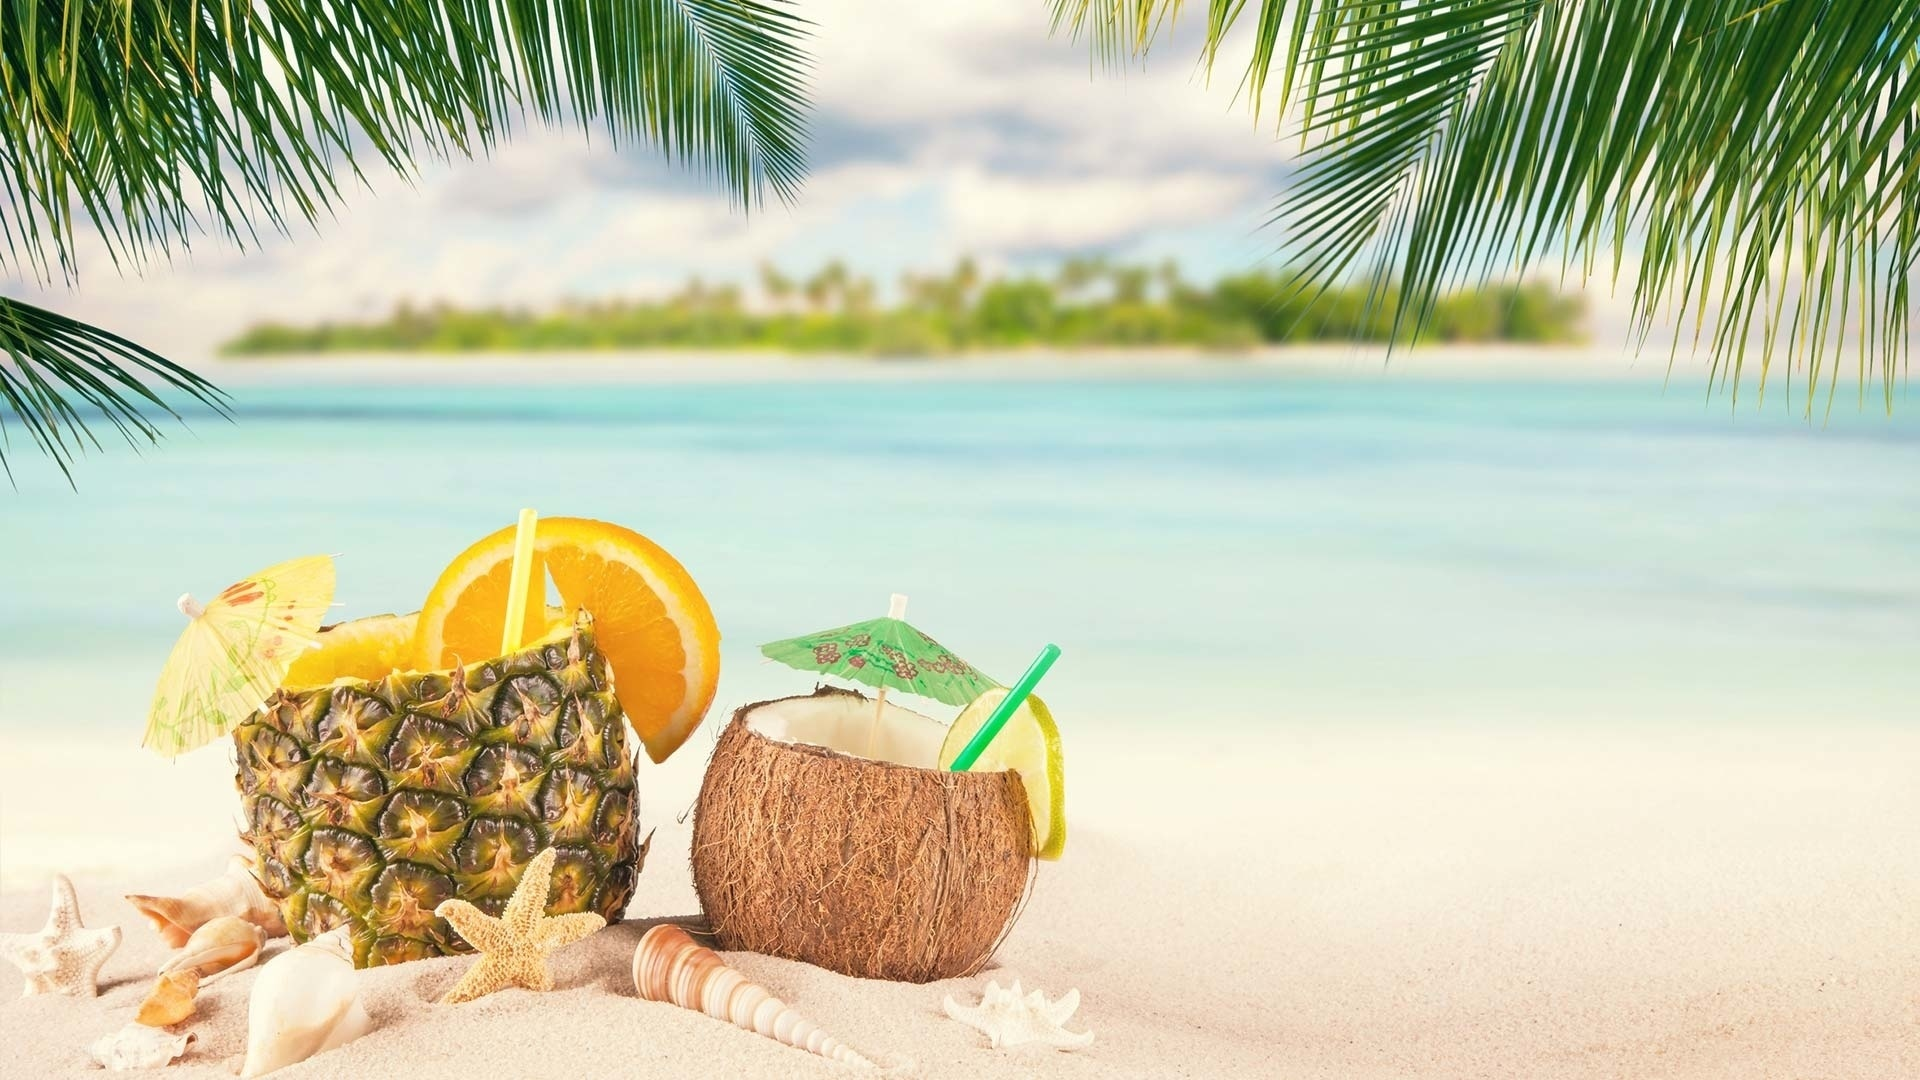 Coconuts By The Sea best background